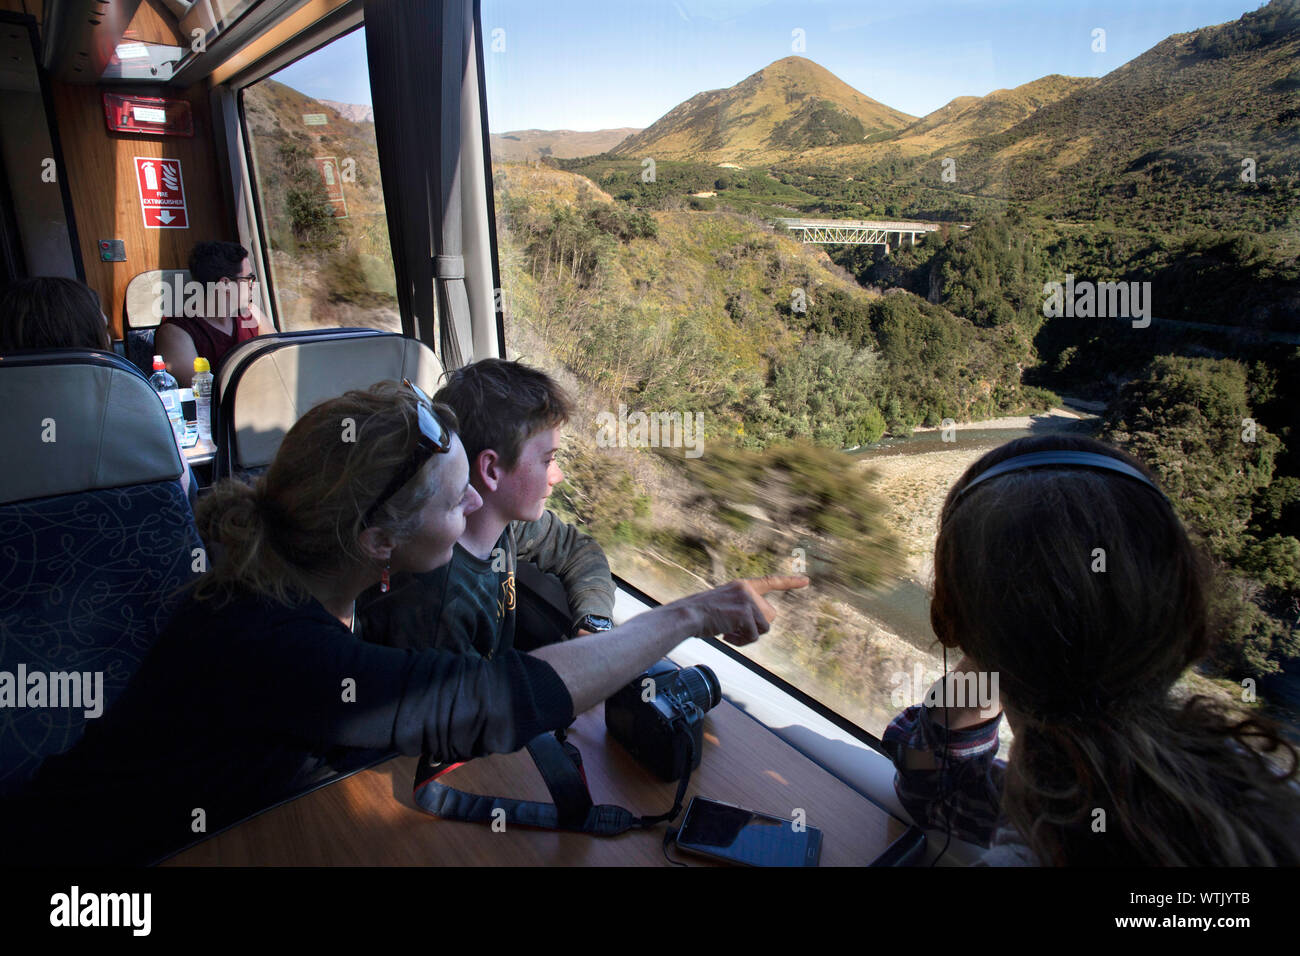 Picture by Tim Cuff - 5 January 2019 - Tranz Alpine train journey from Christchurch to Greymouth, New Zealand: approaching a bridge over the Waimakari Stock Photo